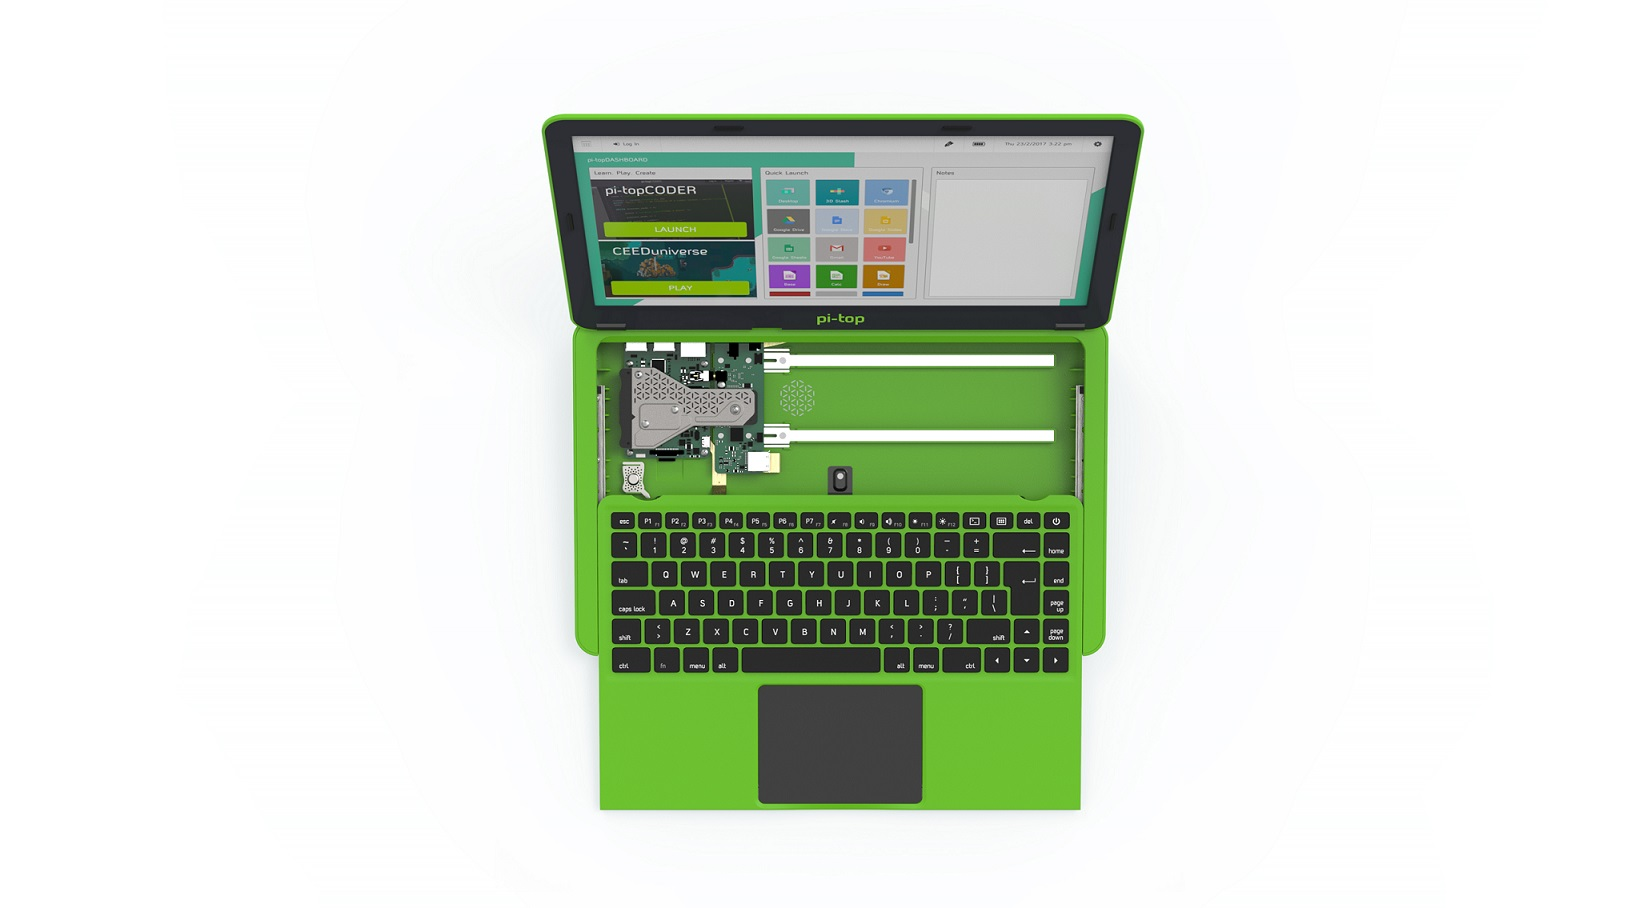 https://www.realwire.com/writeitfiles/open-keyboard-laptop-pi-top.jpg